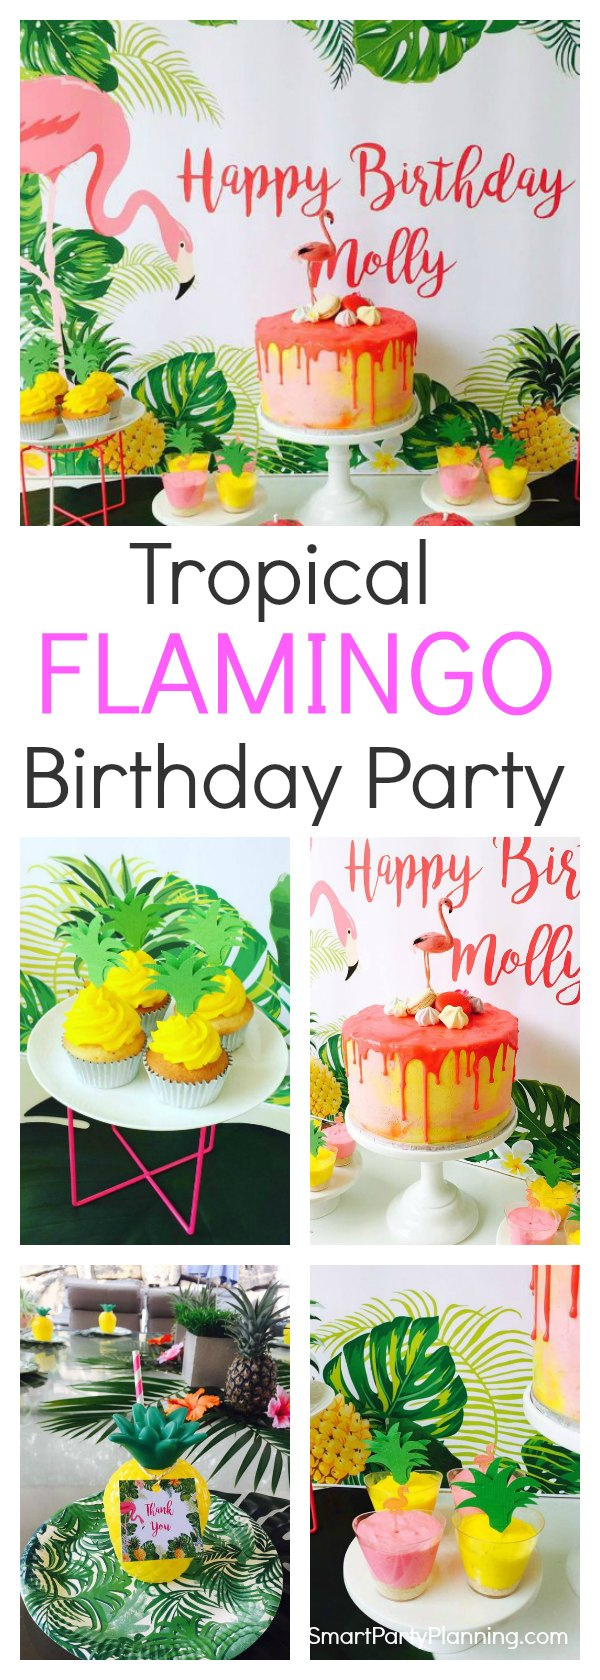 A gorgeous flamingo birthday party that will provide you with plenty of ideas to hold your own. This is one that the kids will love. Showcasing a stunning cake, delicious food and eye popping decorations. This is a party theme that will really stand out from the crowd.